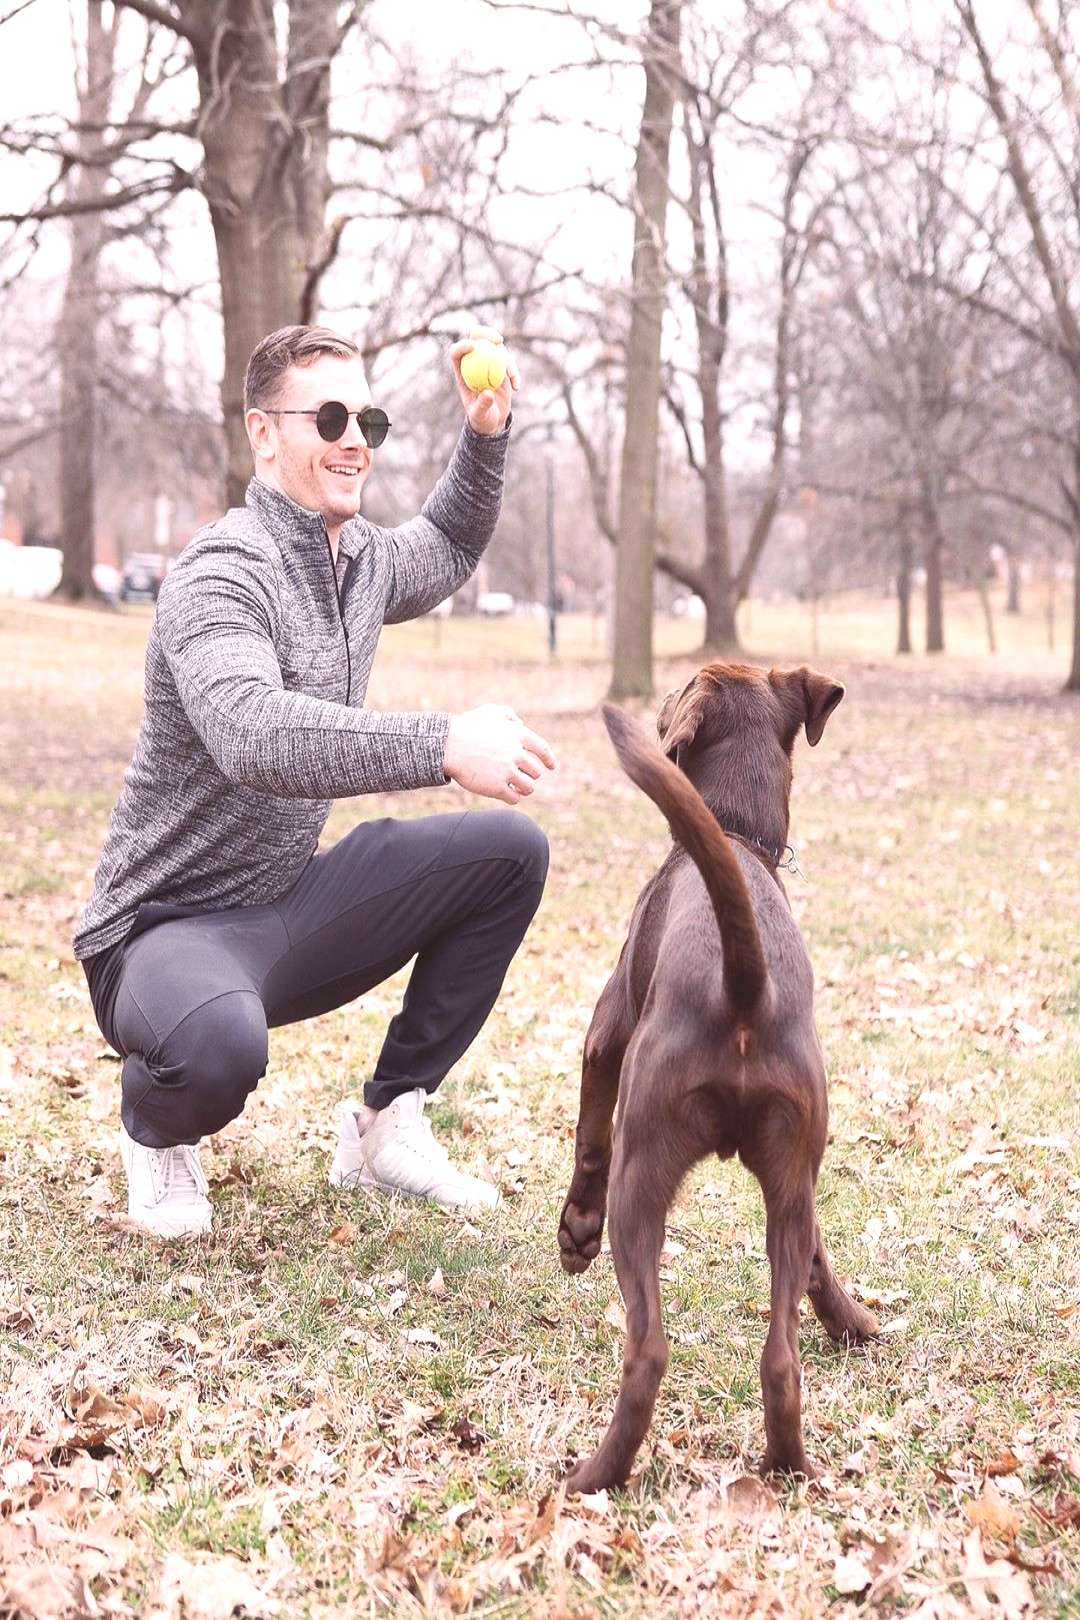 Connor Silverstein on April 22 2020 and 1 person dog tree outdoor